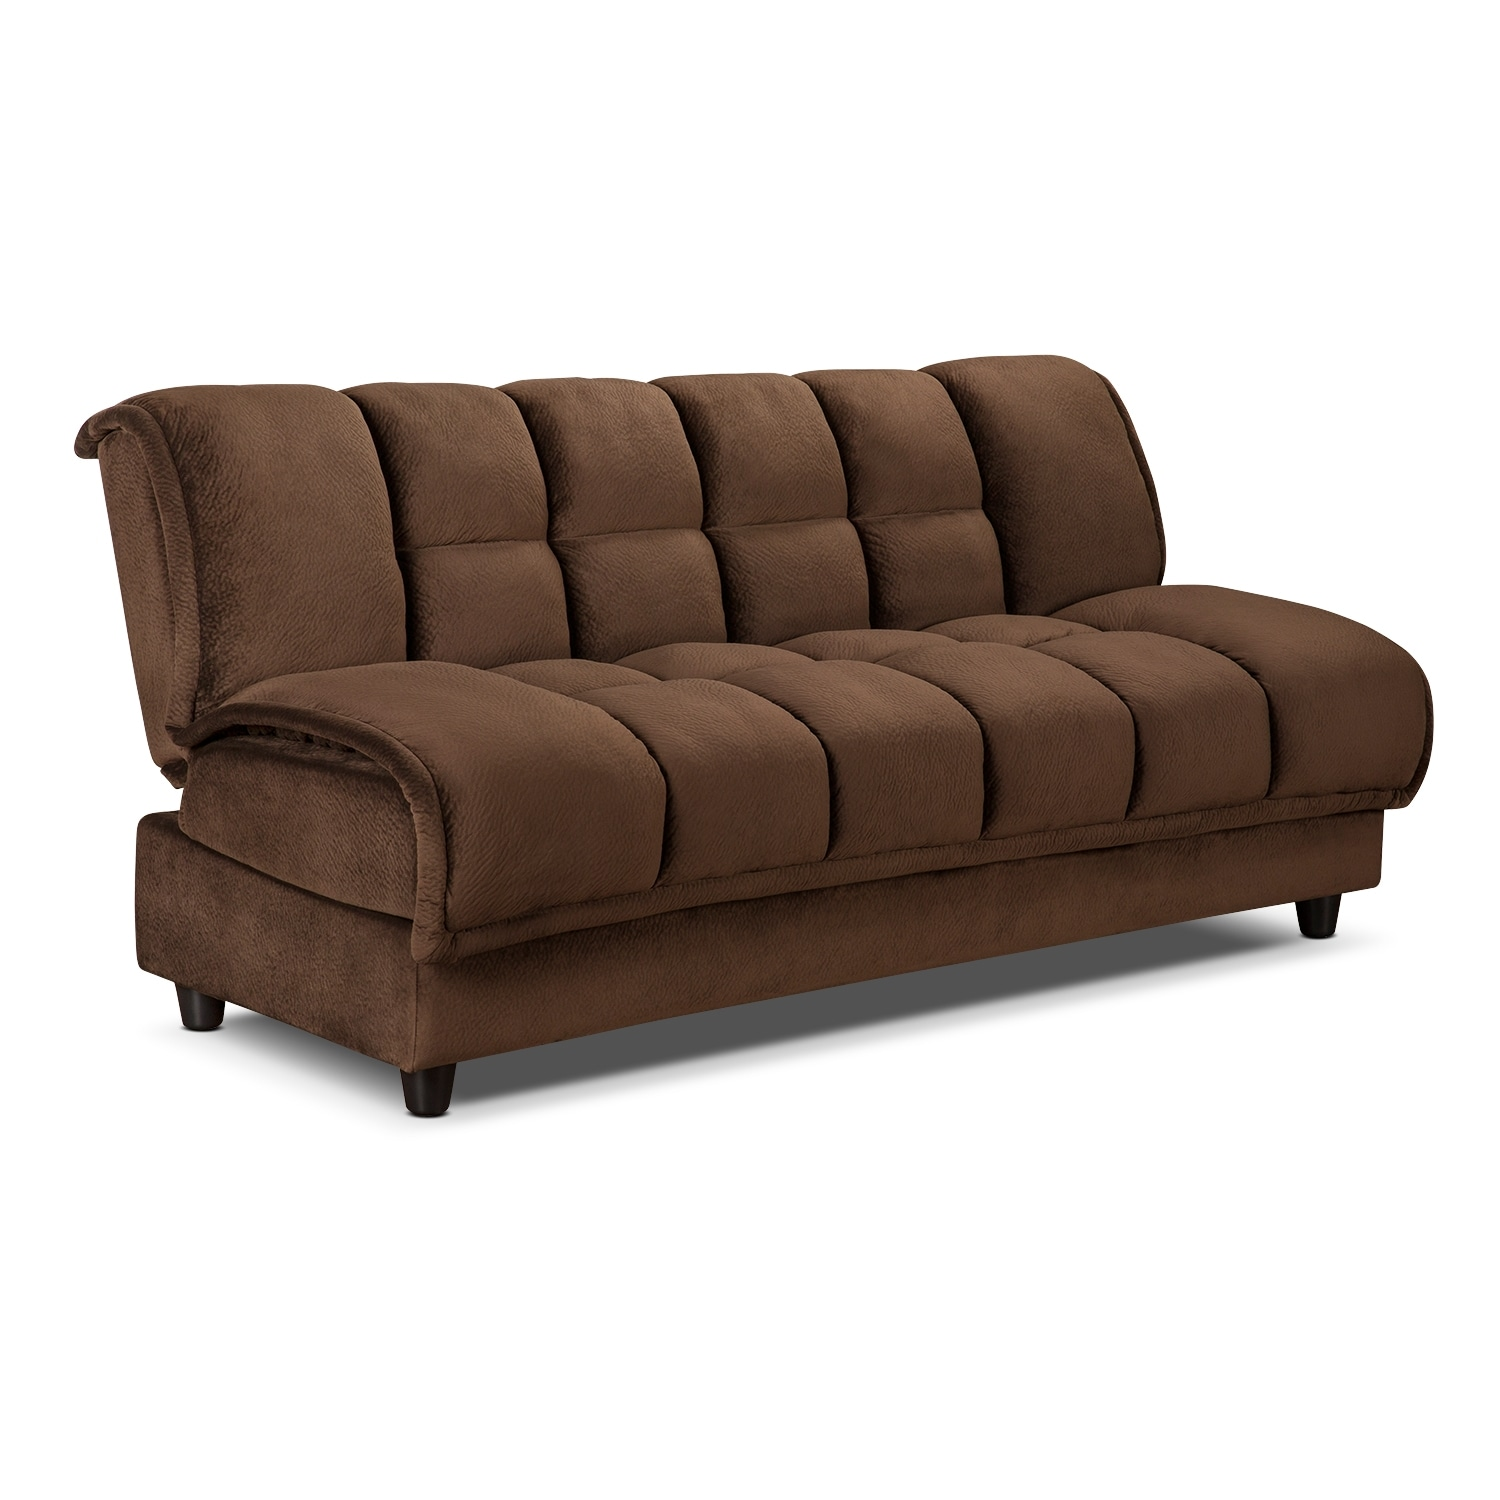 Darrow futon sofa bed with storage for Furniture sofa bed